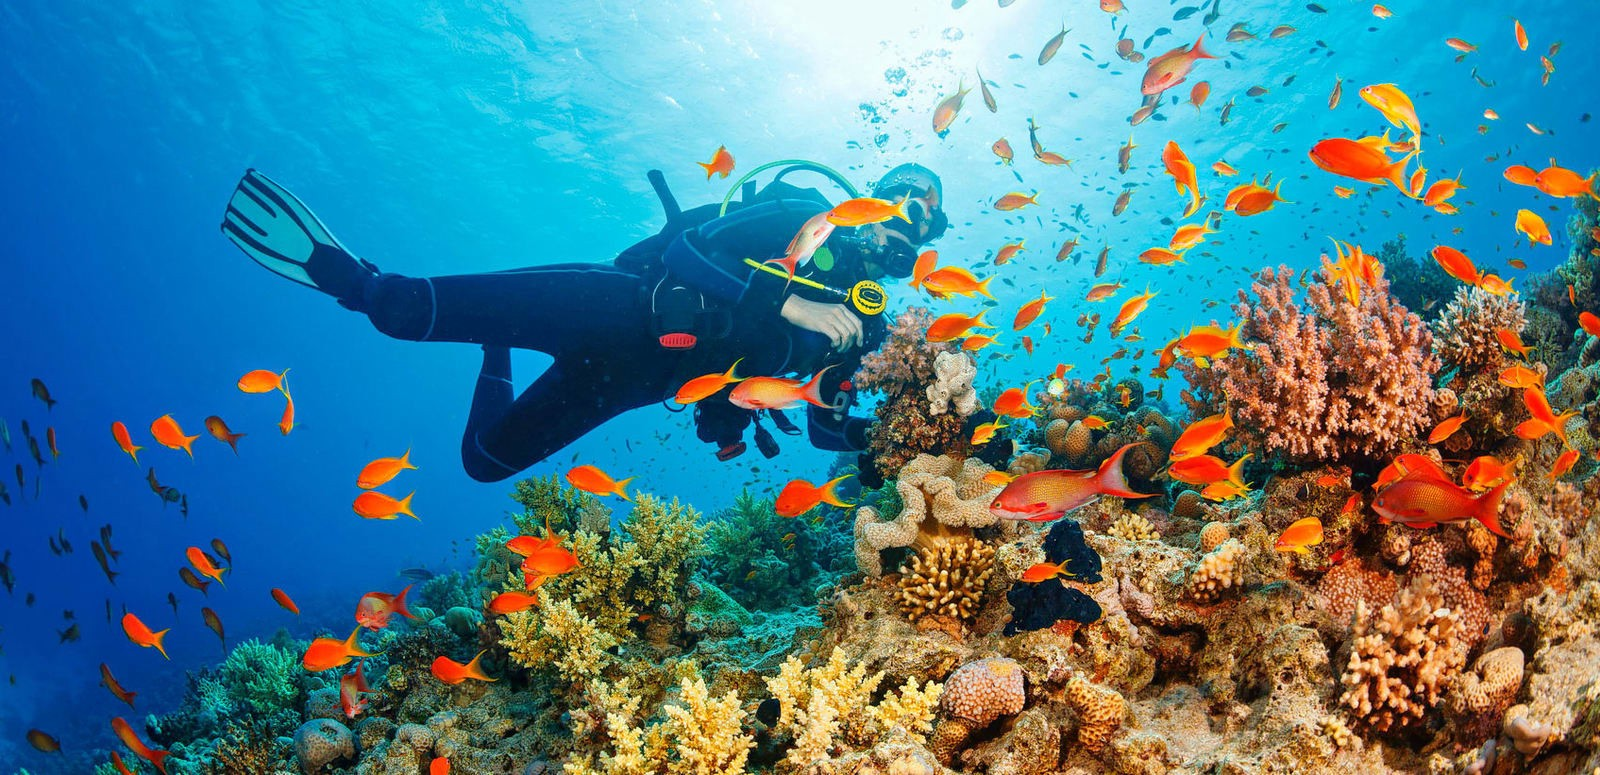 Let's Go Scuba Diving in Malaysia! 3 Best Locations